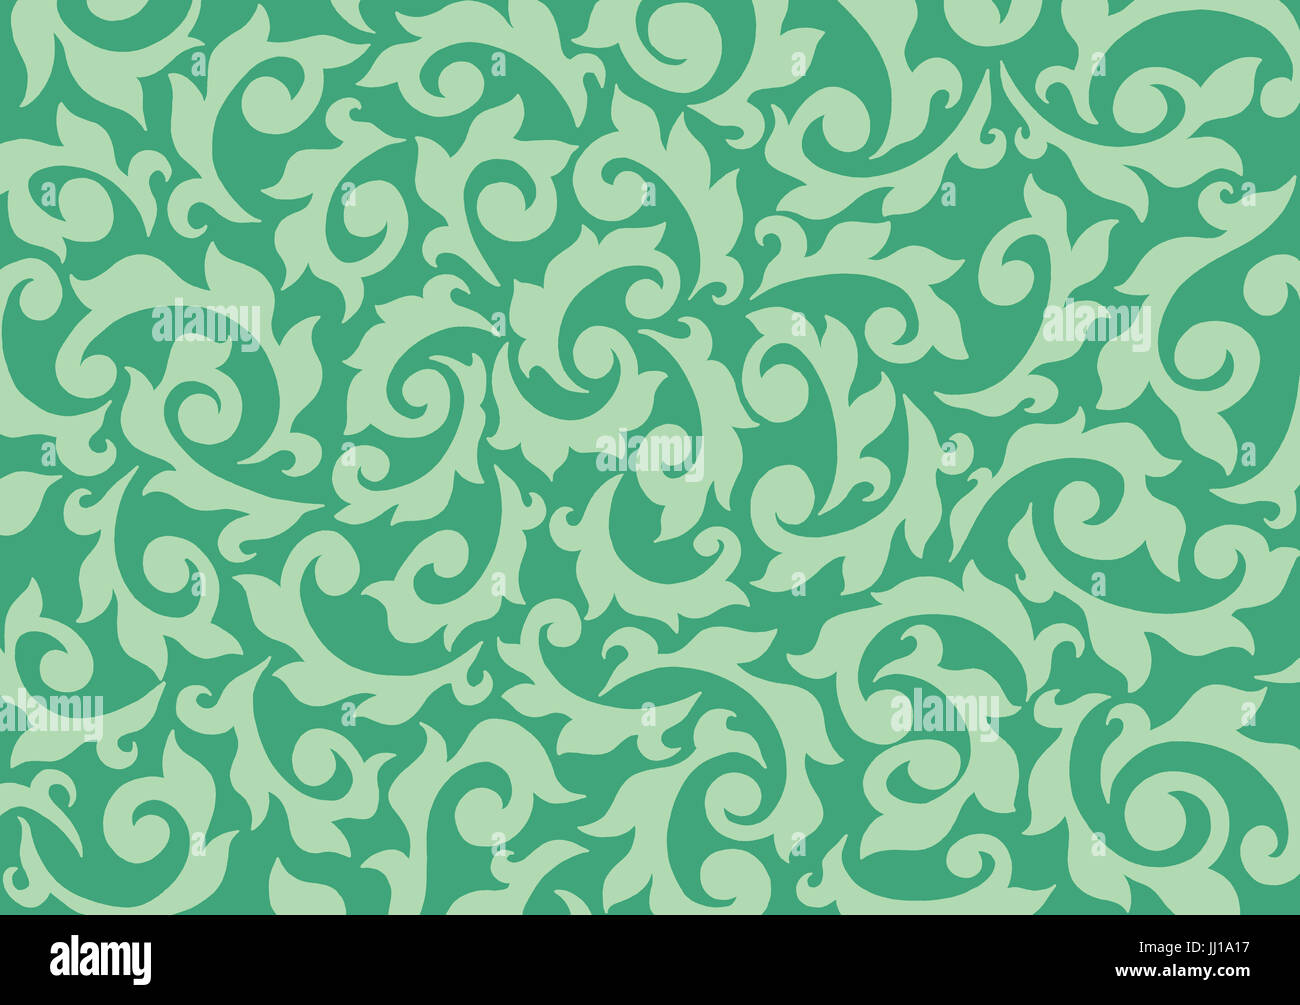 Foliage. A hand drawn non-repeating patternStock Photo